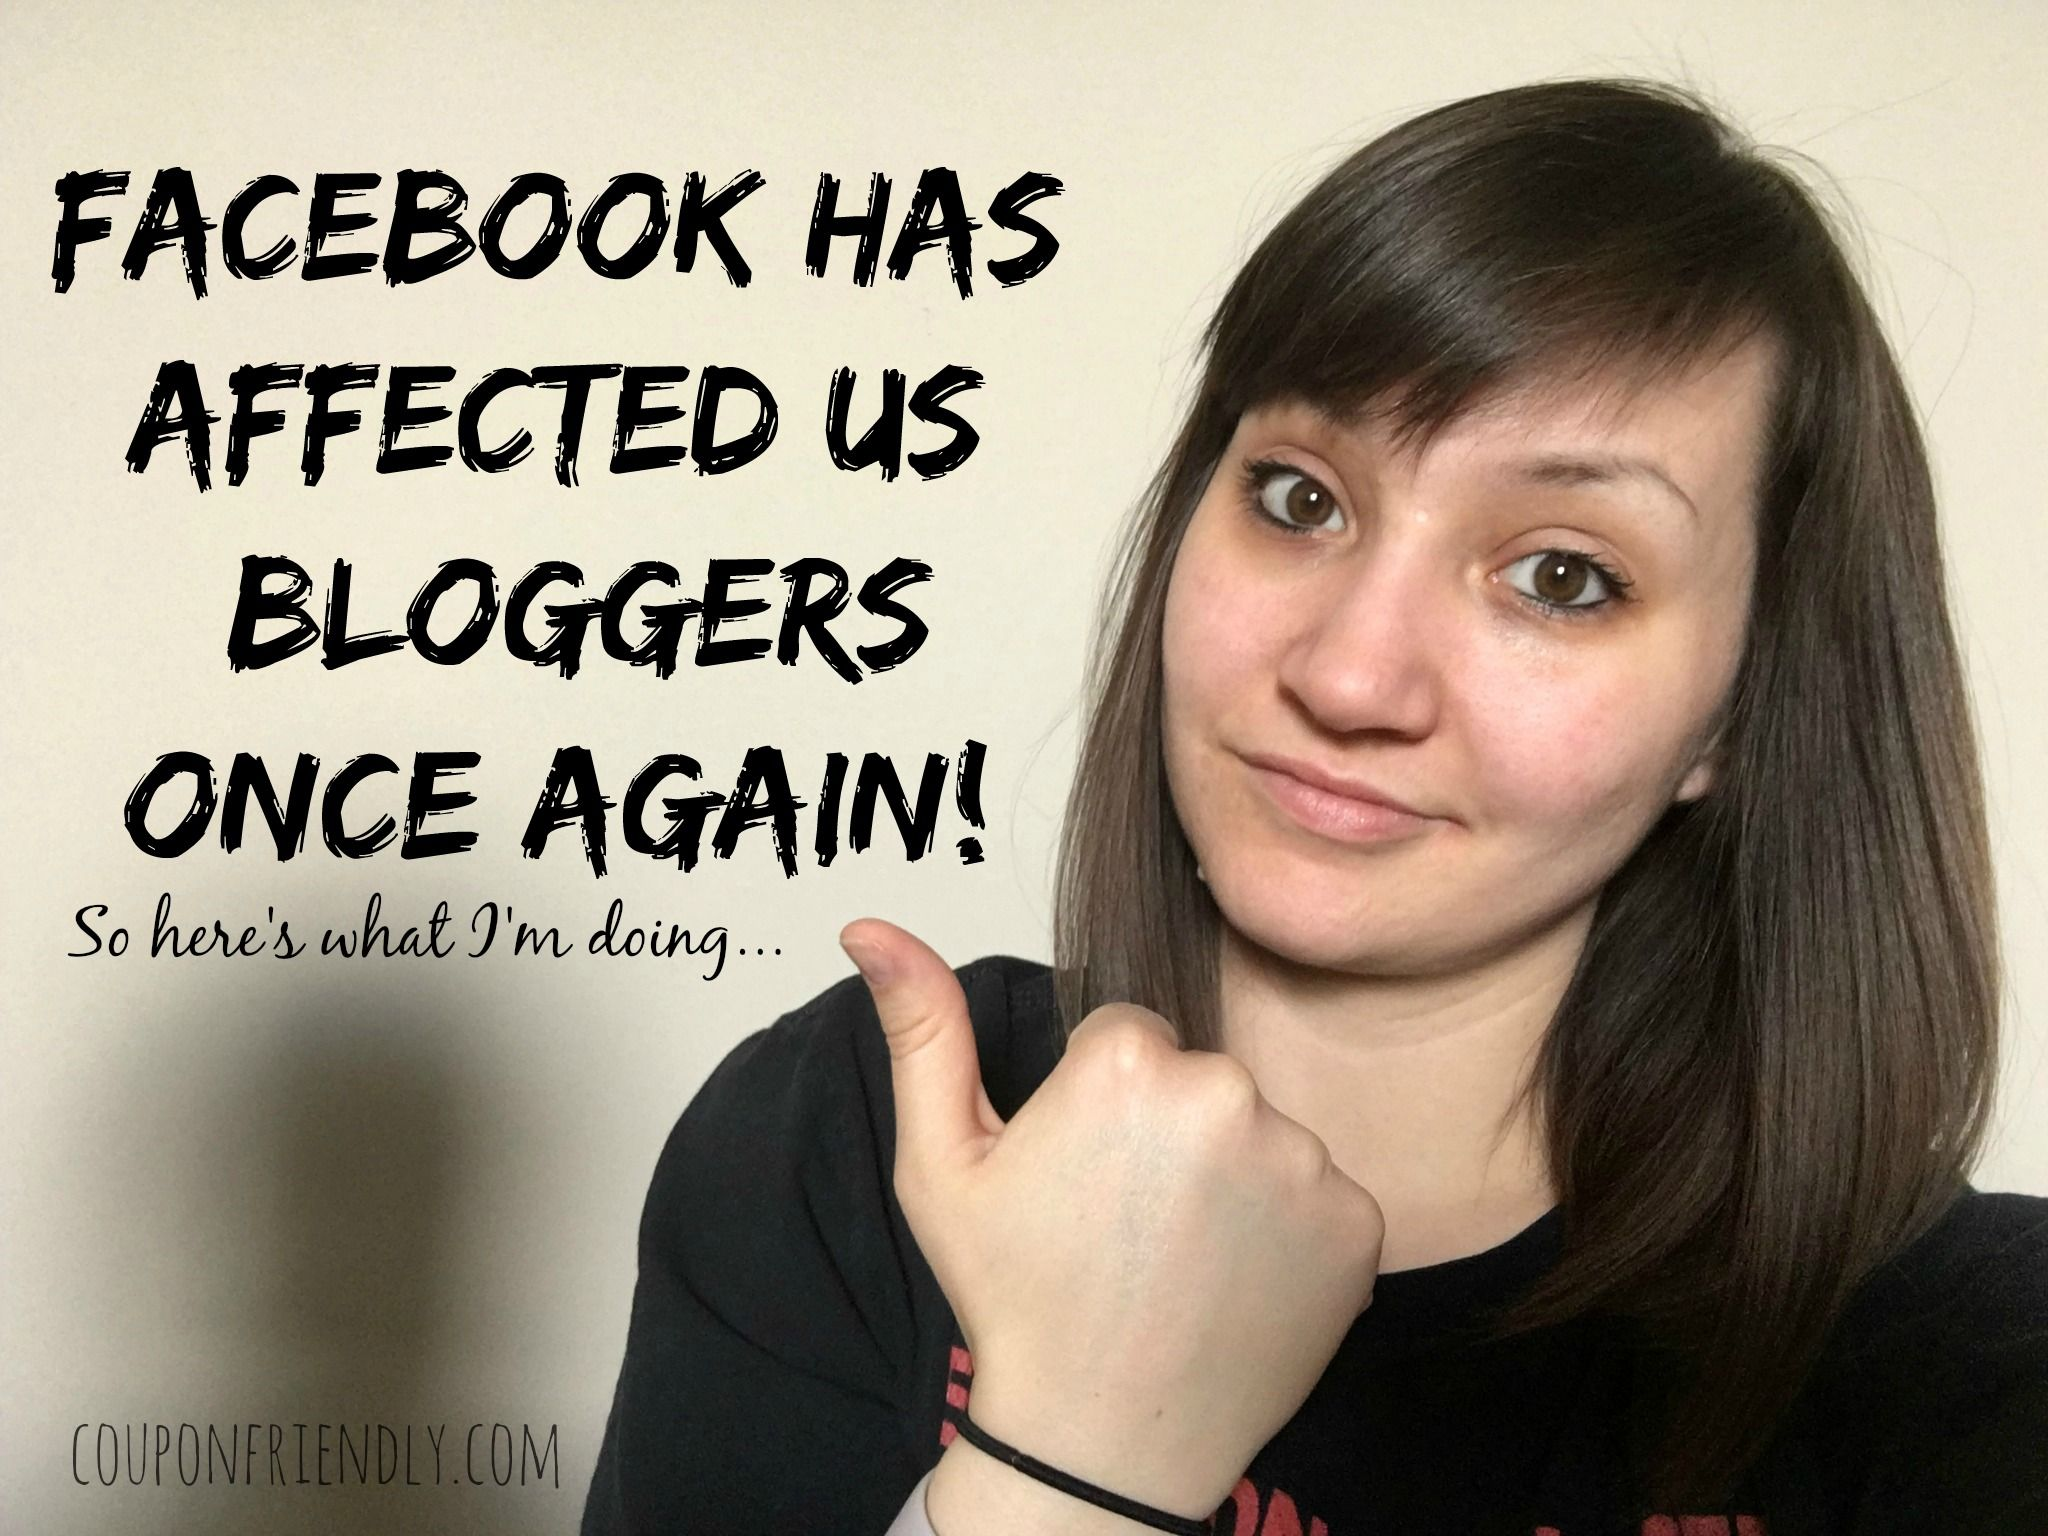 Facebook has affected us bloggers once again! So here's what I'm doing…